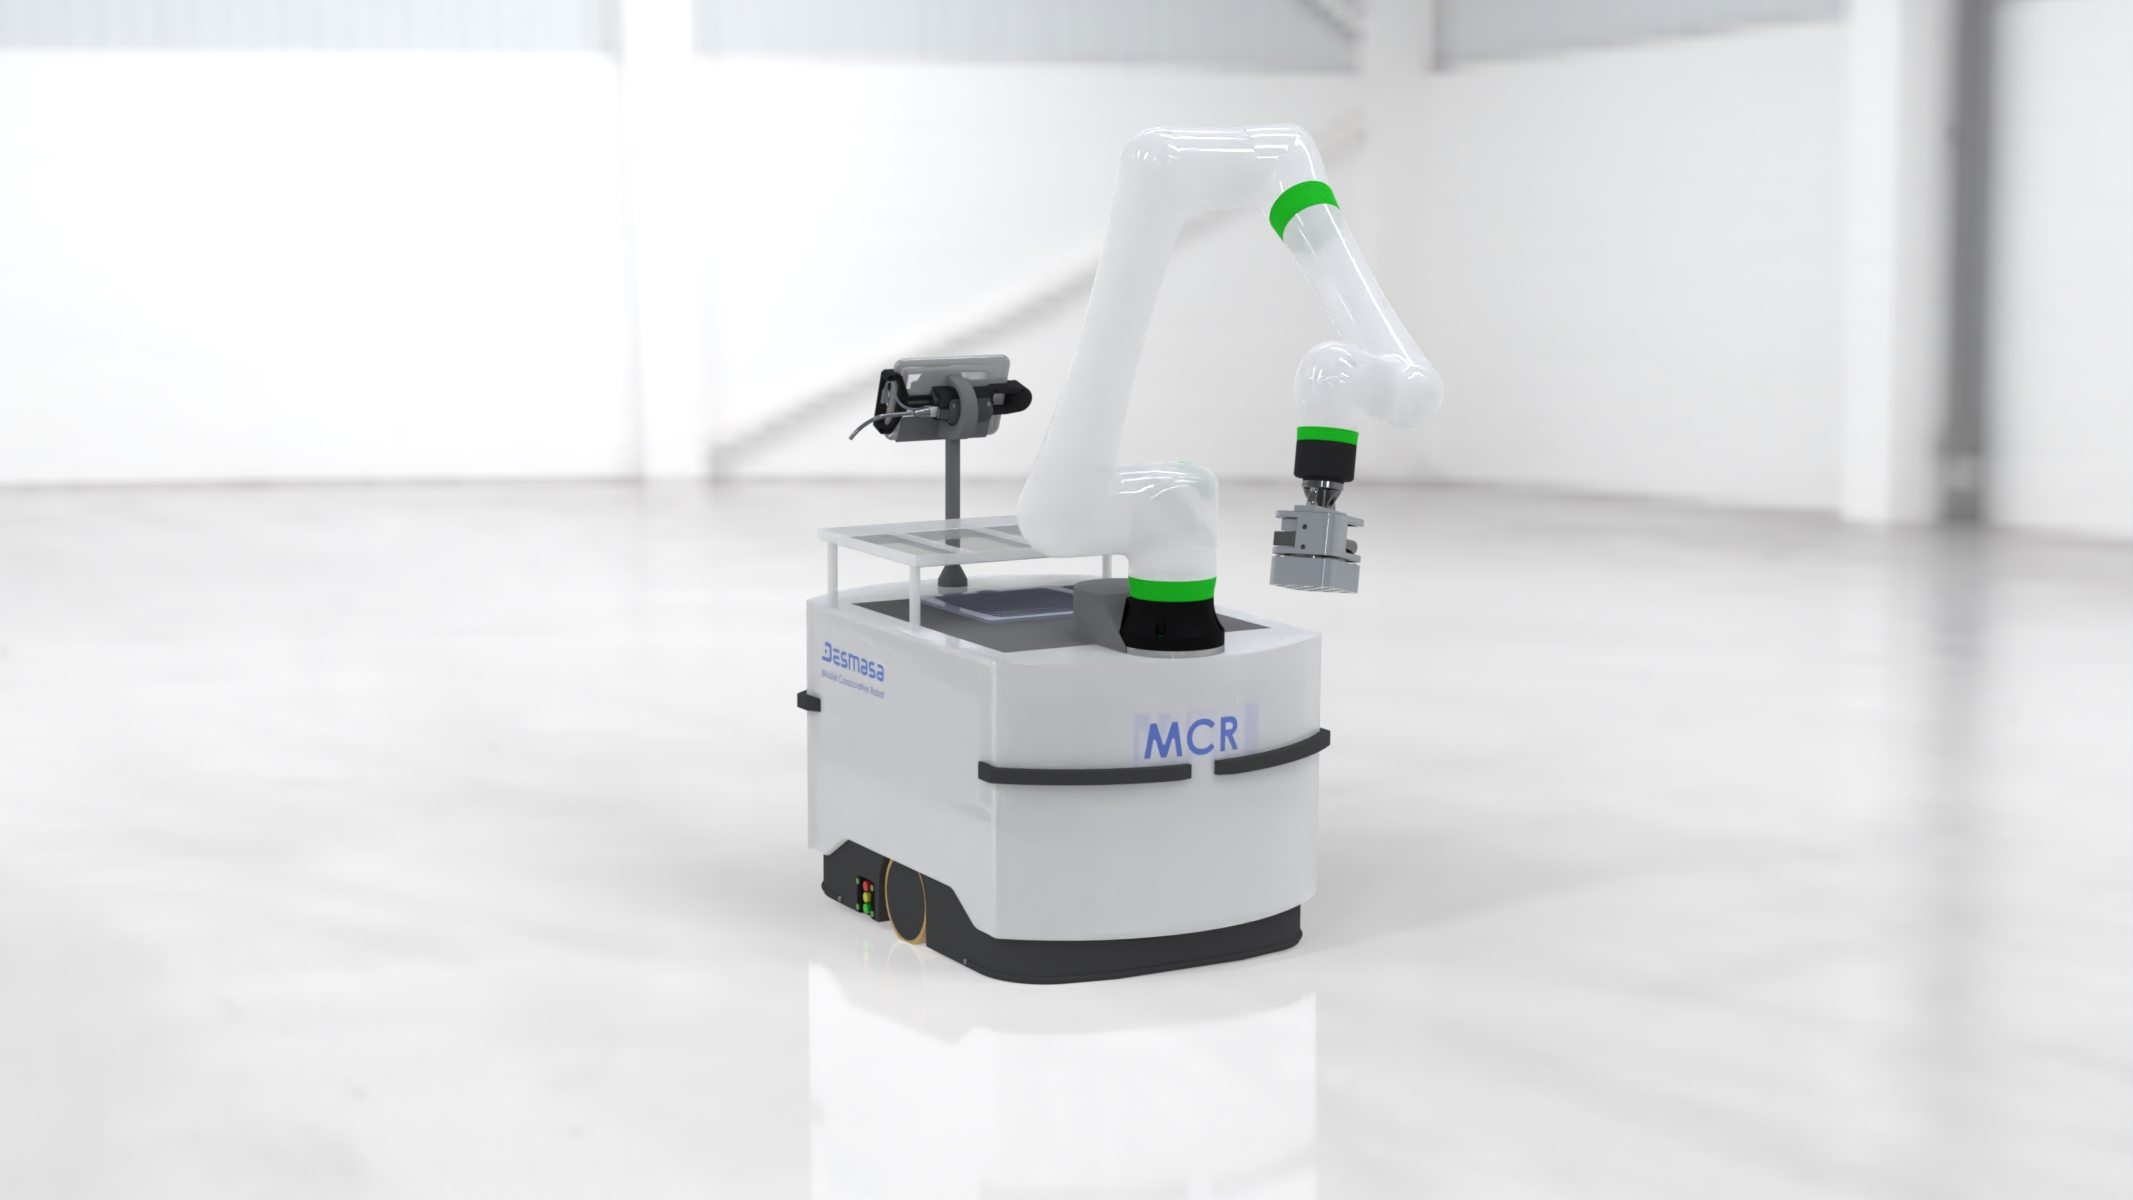 Mobile Collaborative RObot